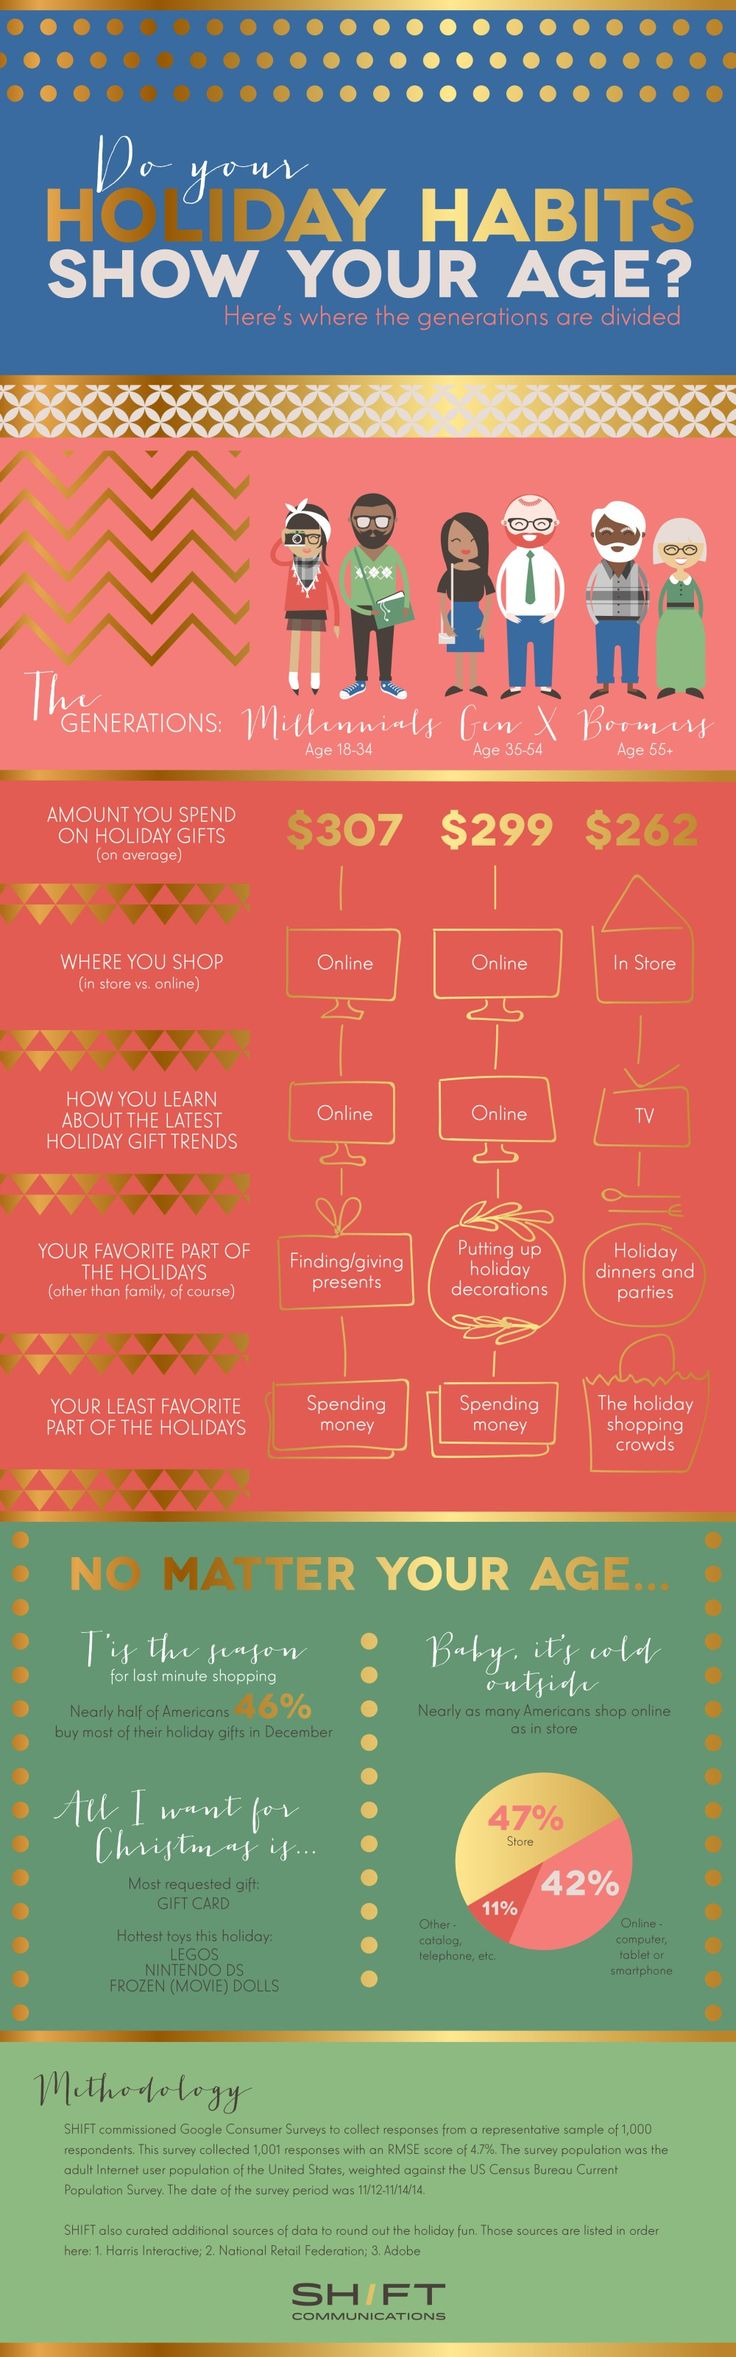 Customer Behavior - Do Your Holiday Habits Show Your Age? [Infographic] -- do your habits fit your age range?